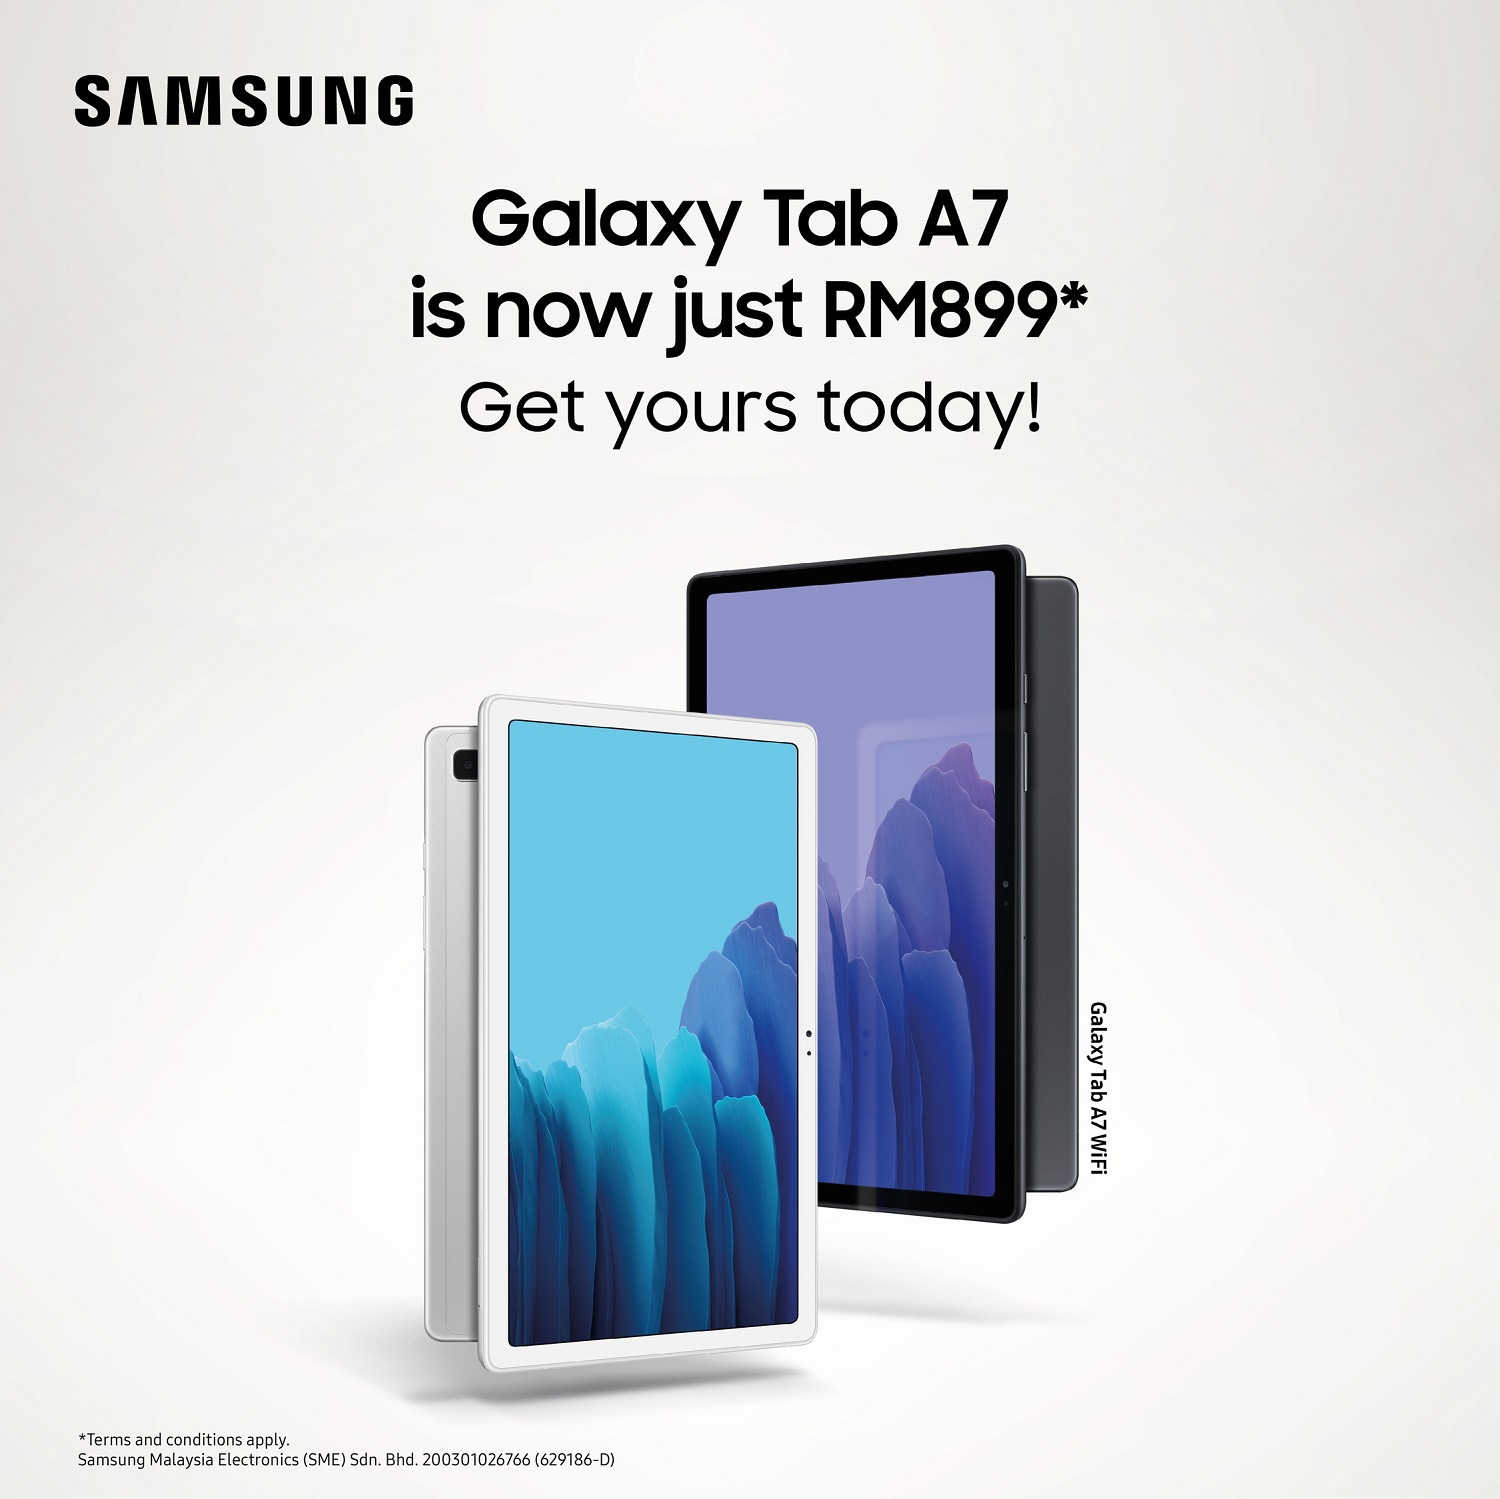 Samsung Galaxy Tab A7 is Now Cheaper at Only RM899